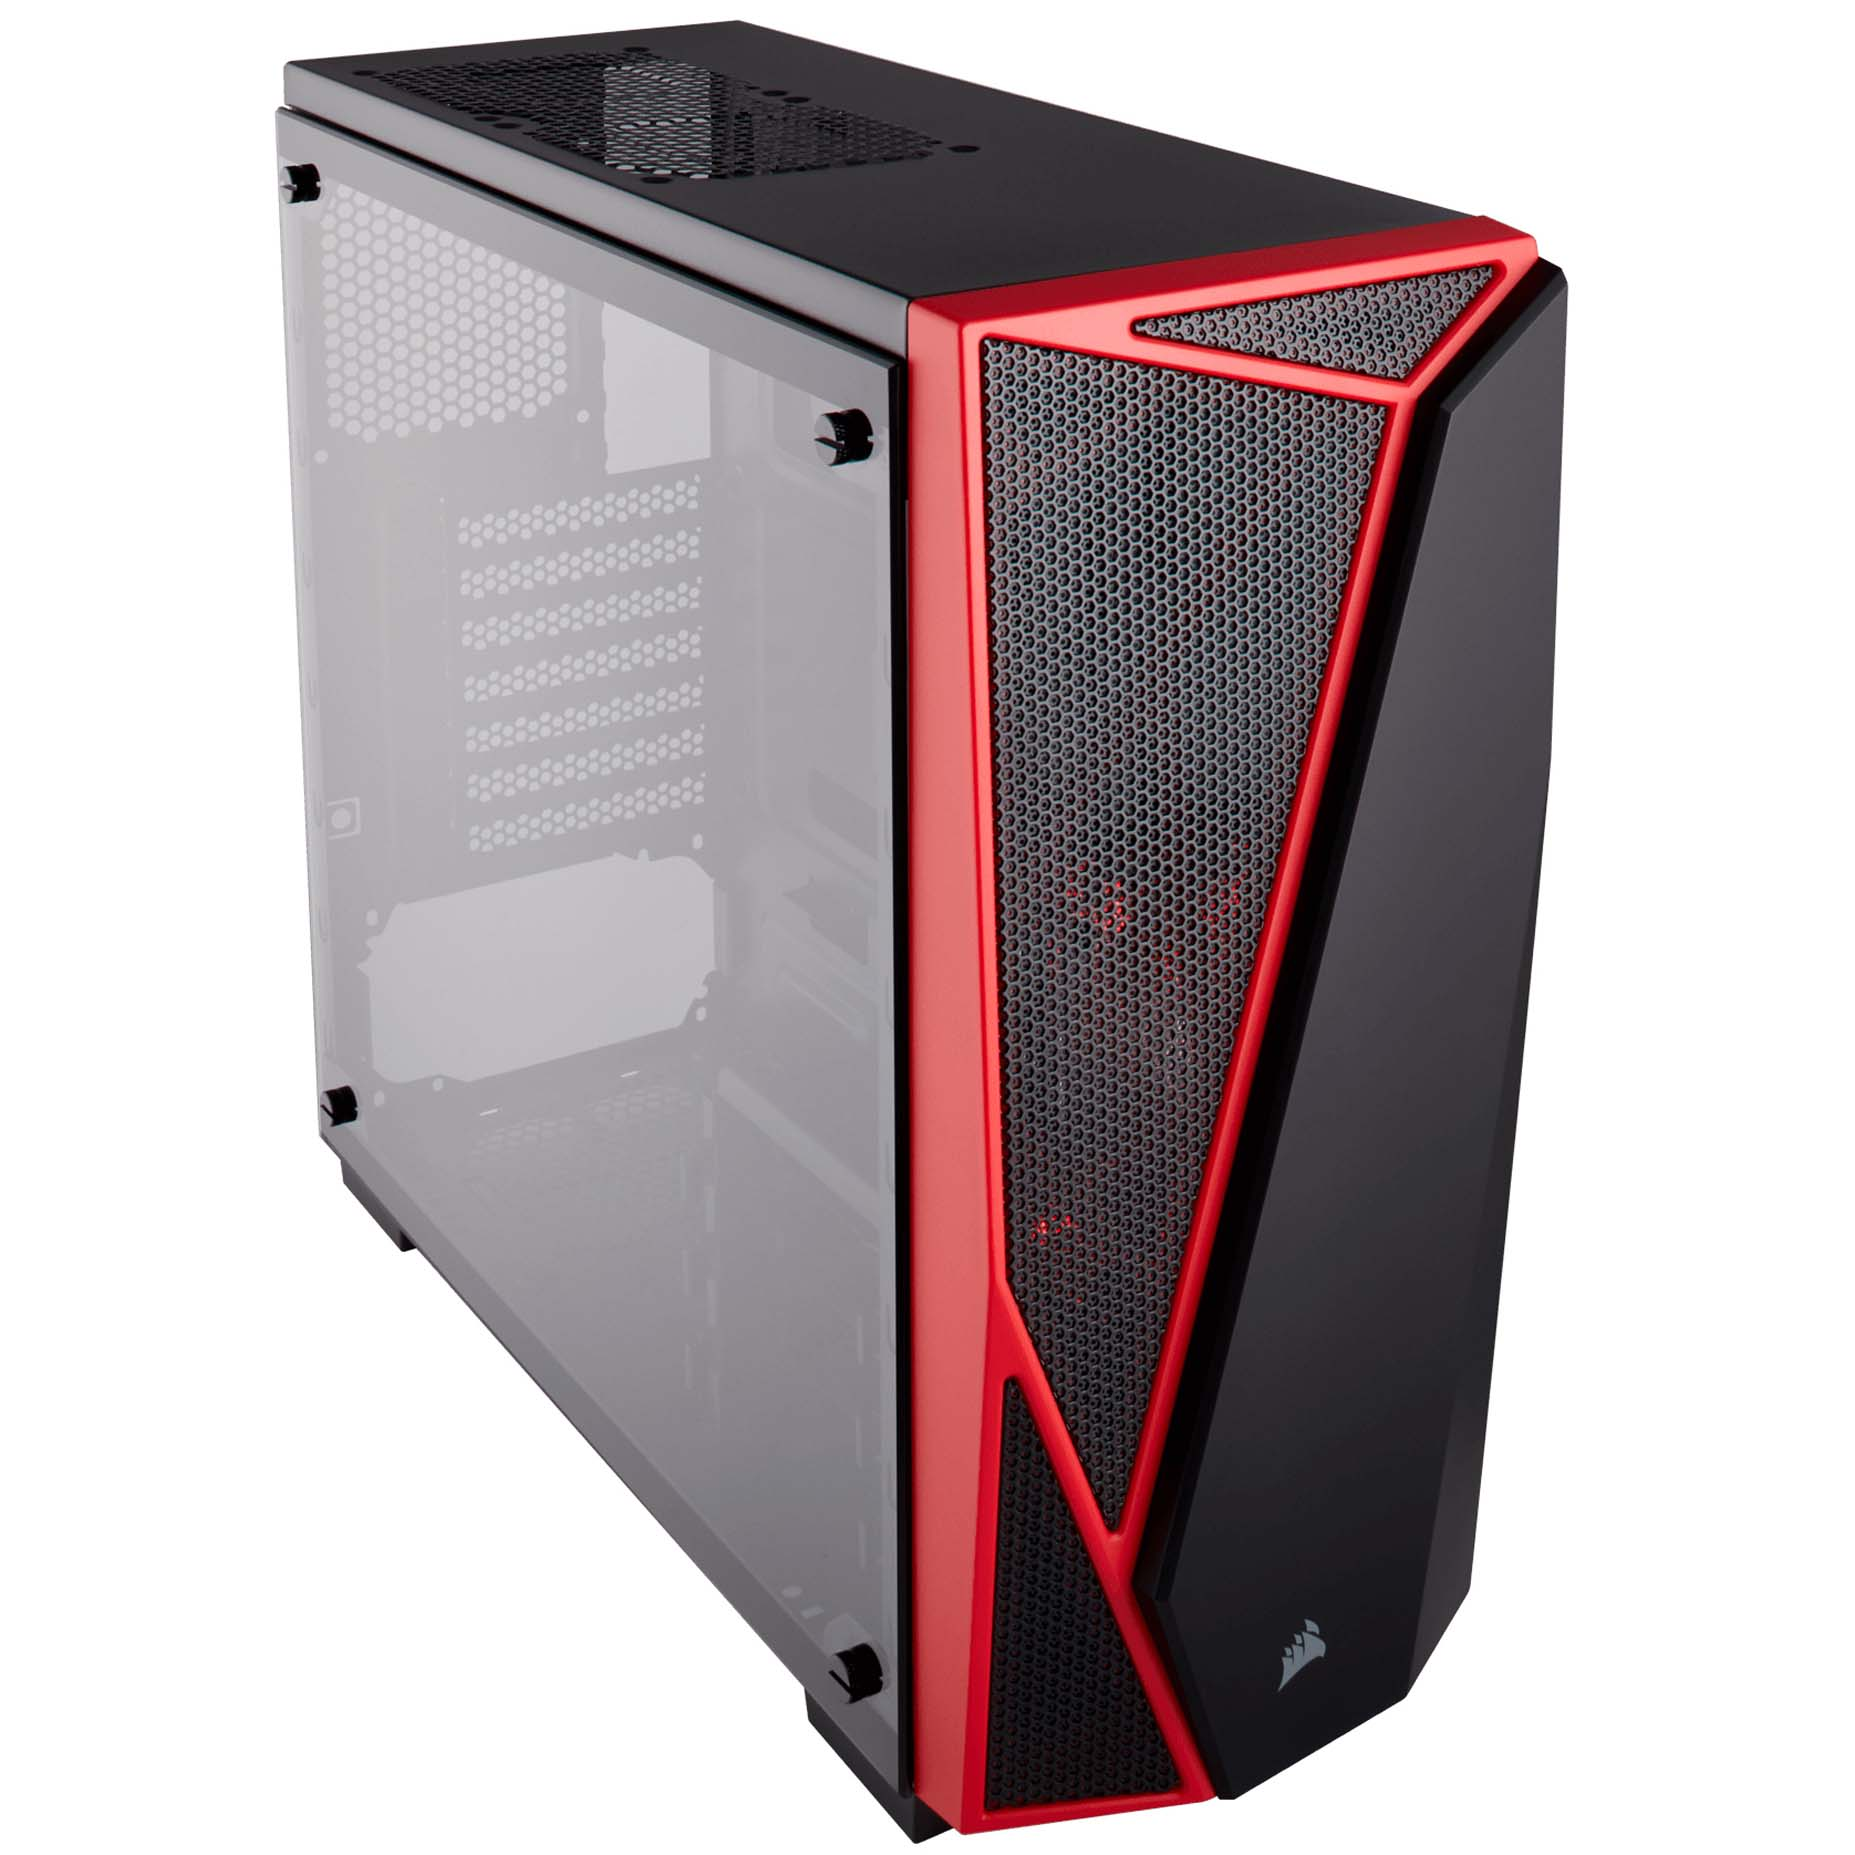 Harga Jual Corsair CC-9011117-WW Carbide Series SPEC-04 Tempered Glass Mid-Tower Gaming Case-Black-Red_1